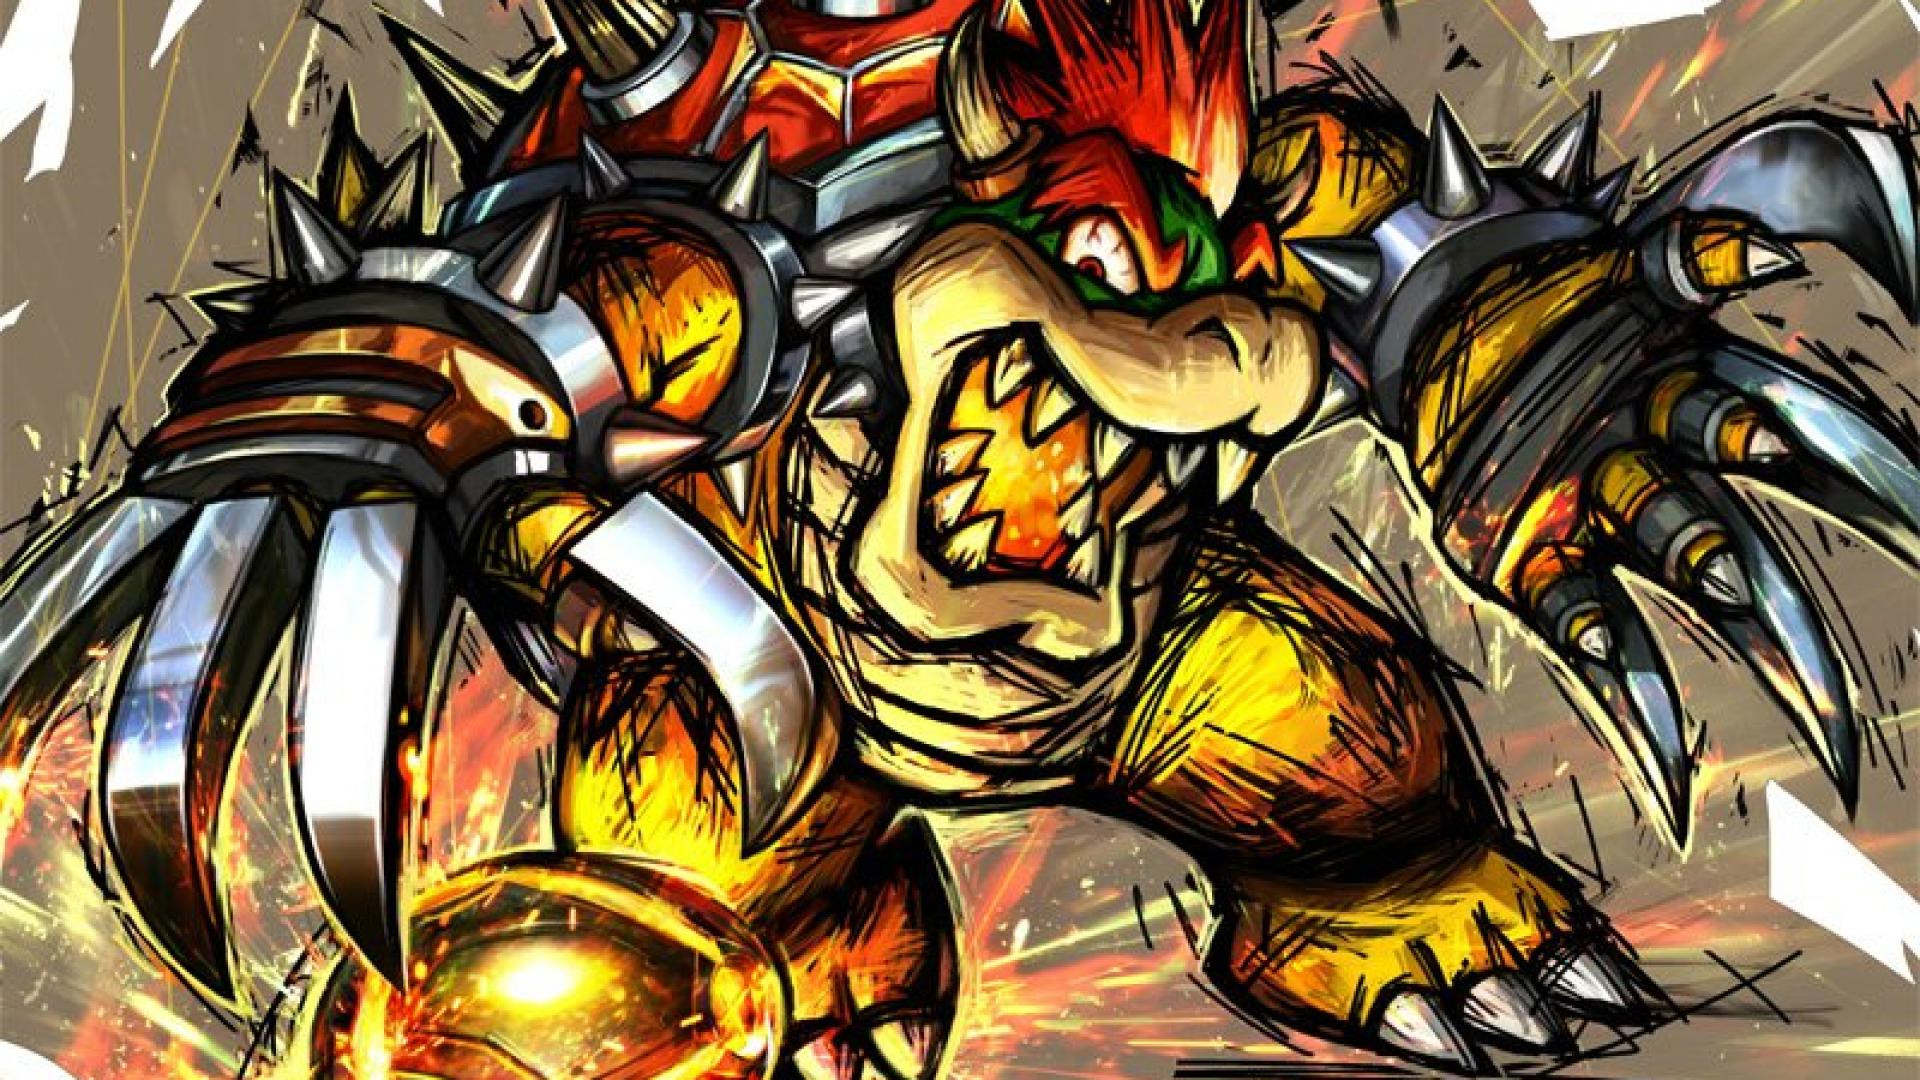 Res: 1920x1080, Bowser images Bowser HD wallpaper and background photos